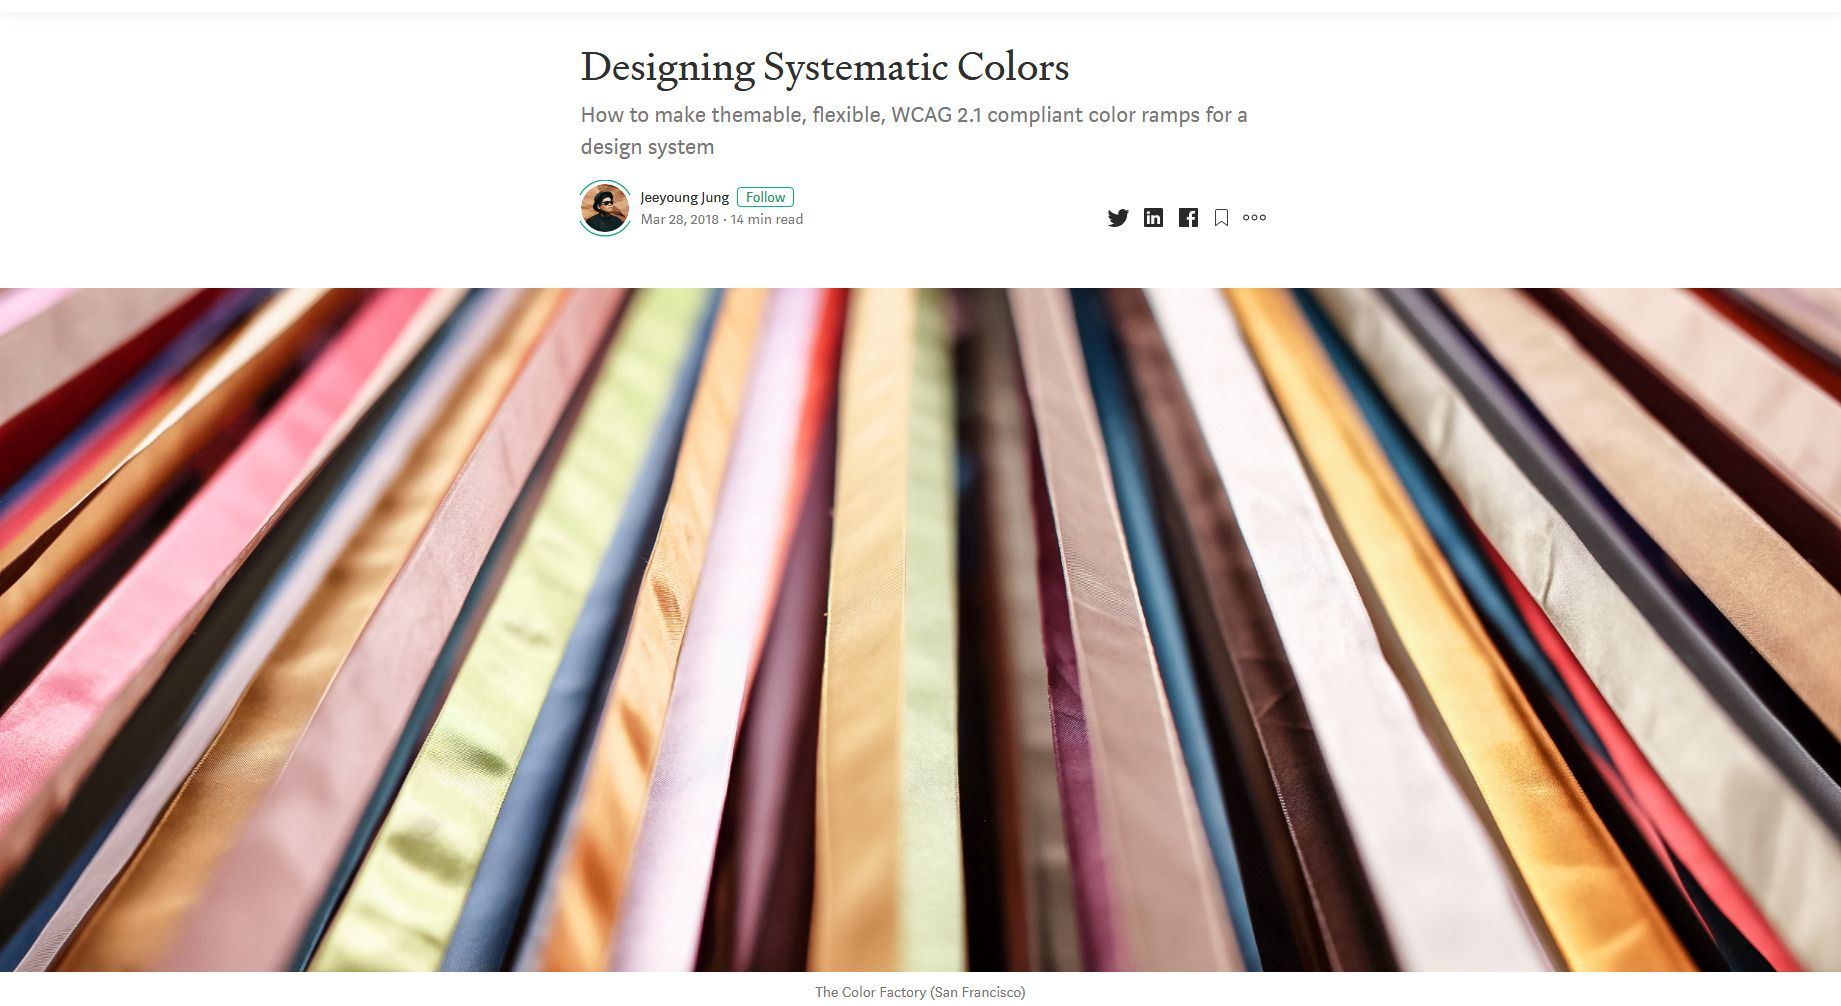 Designing Systematic Colors